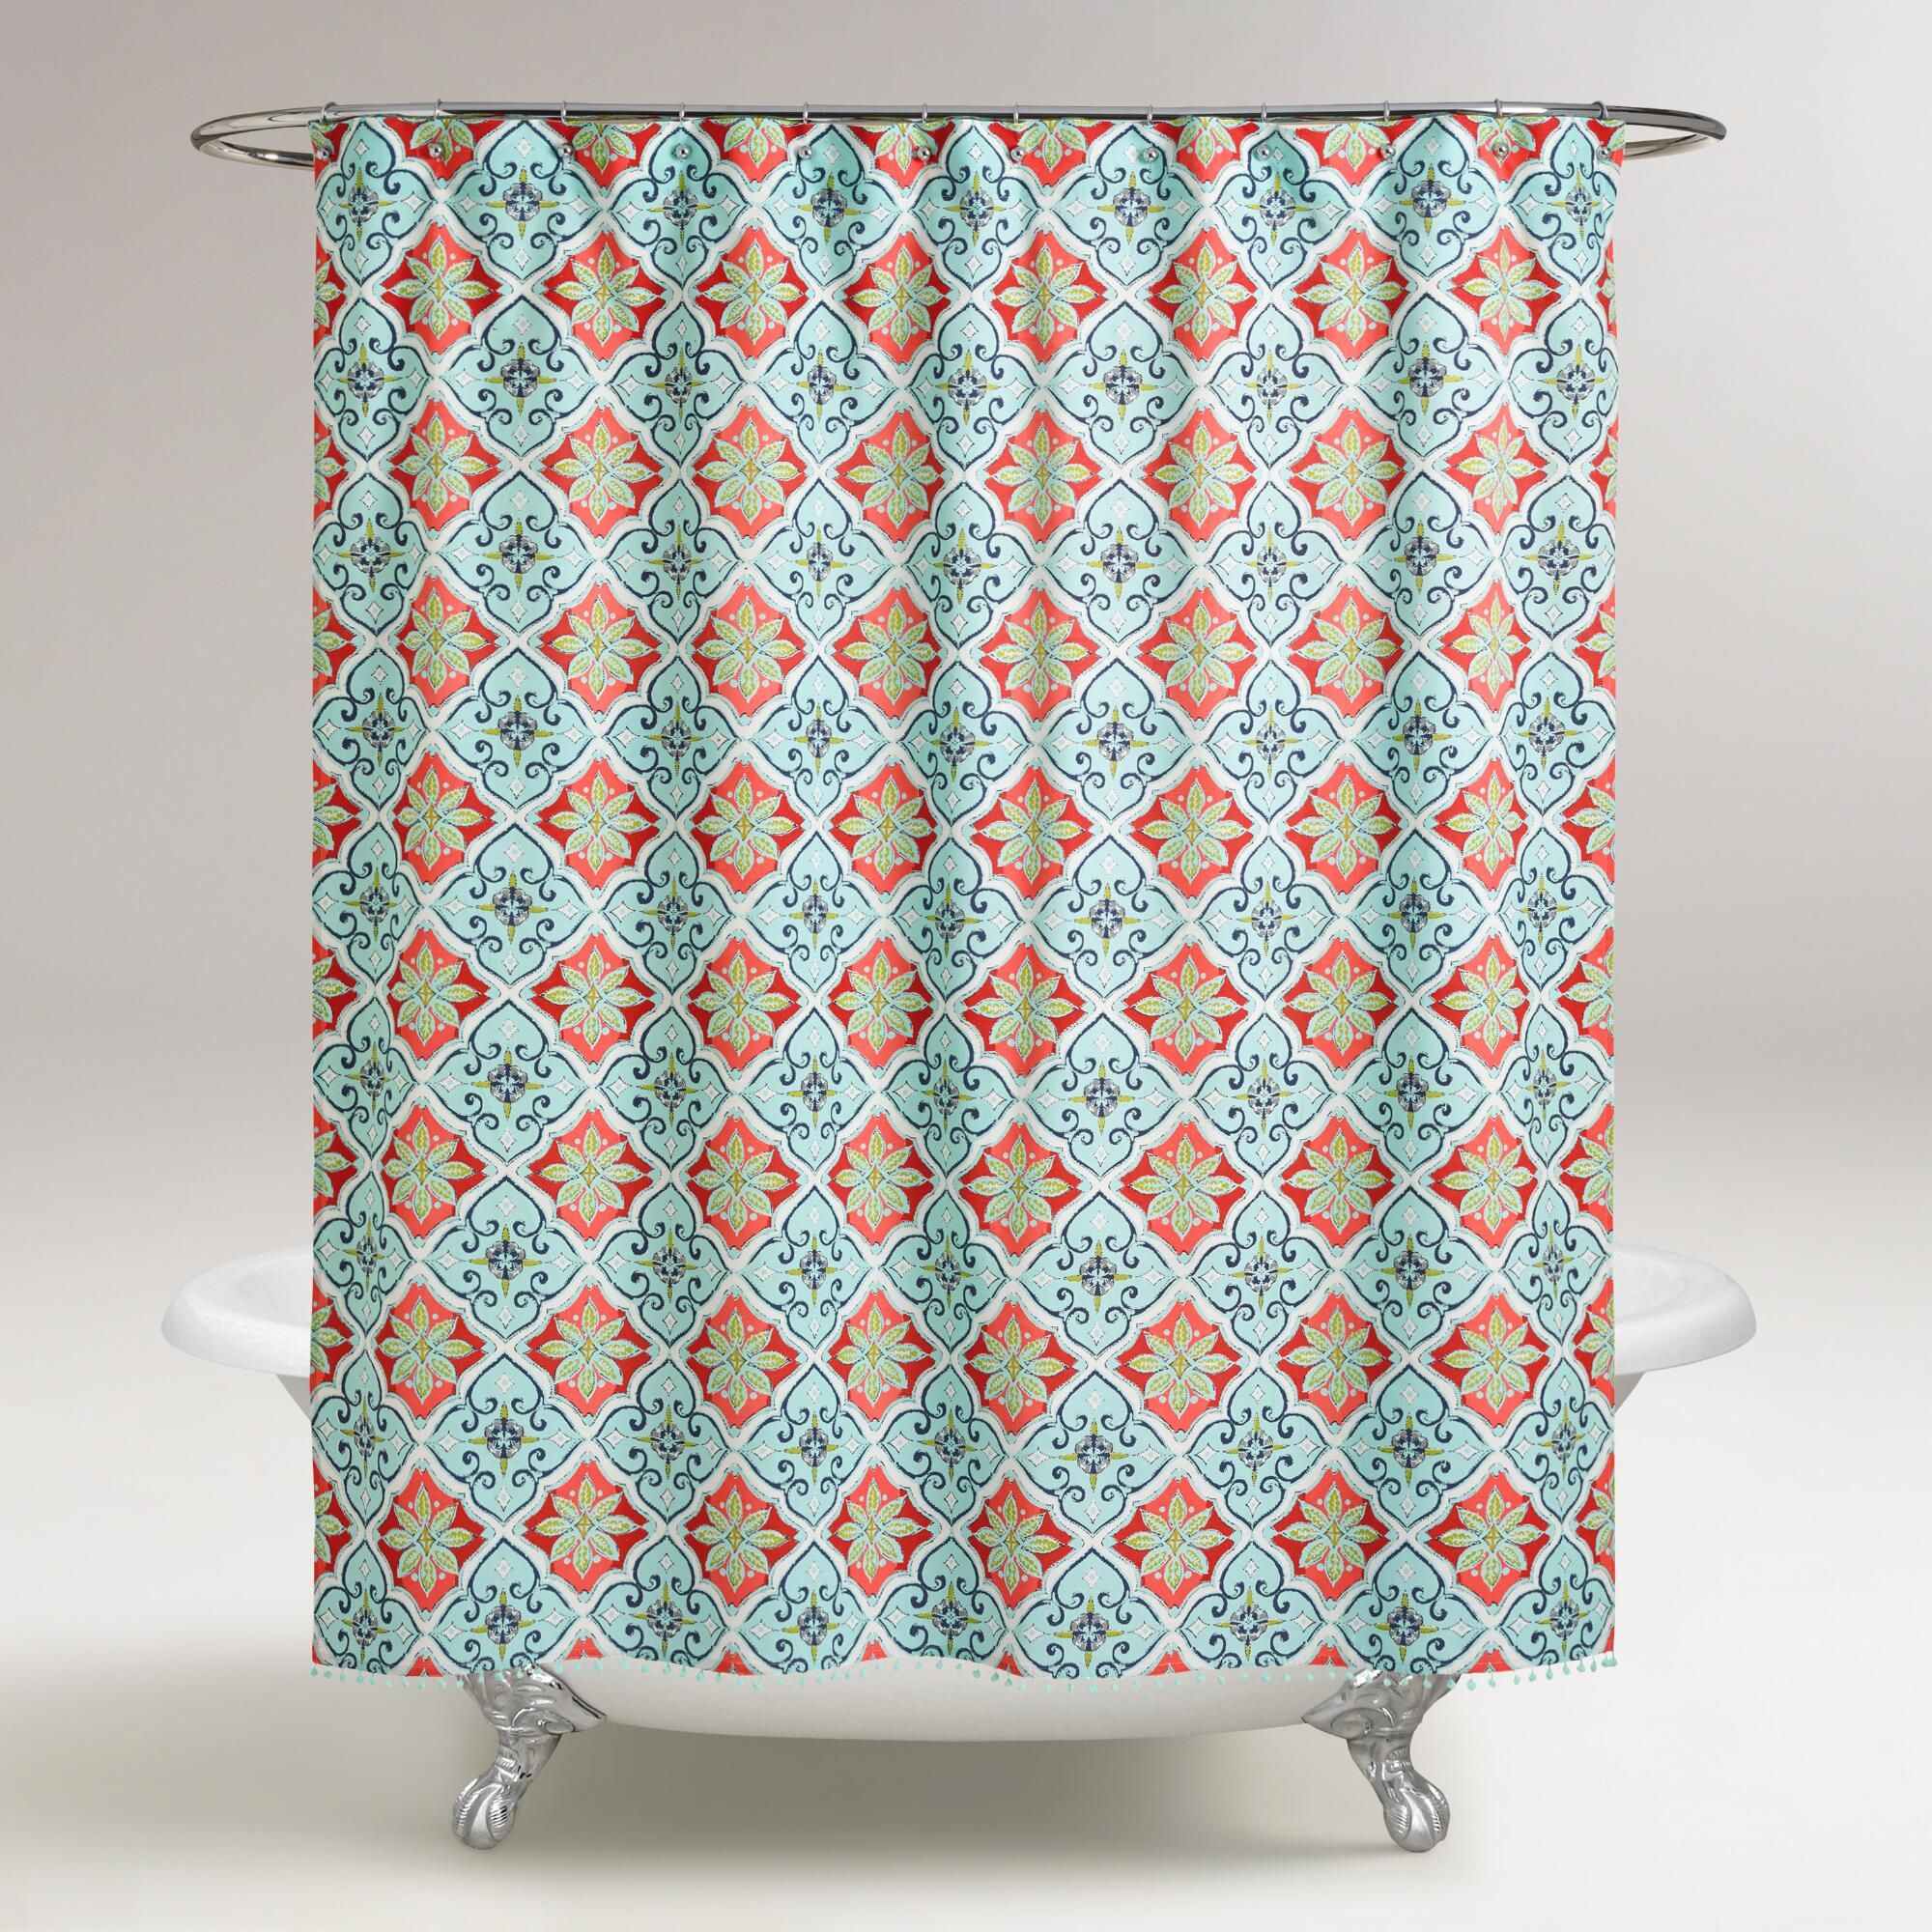 Aqua and Coral Windward Tile Shower Curtain | Coral aqua, Tile ...